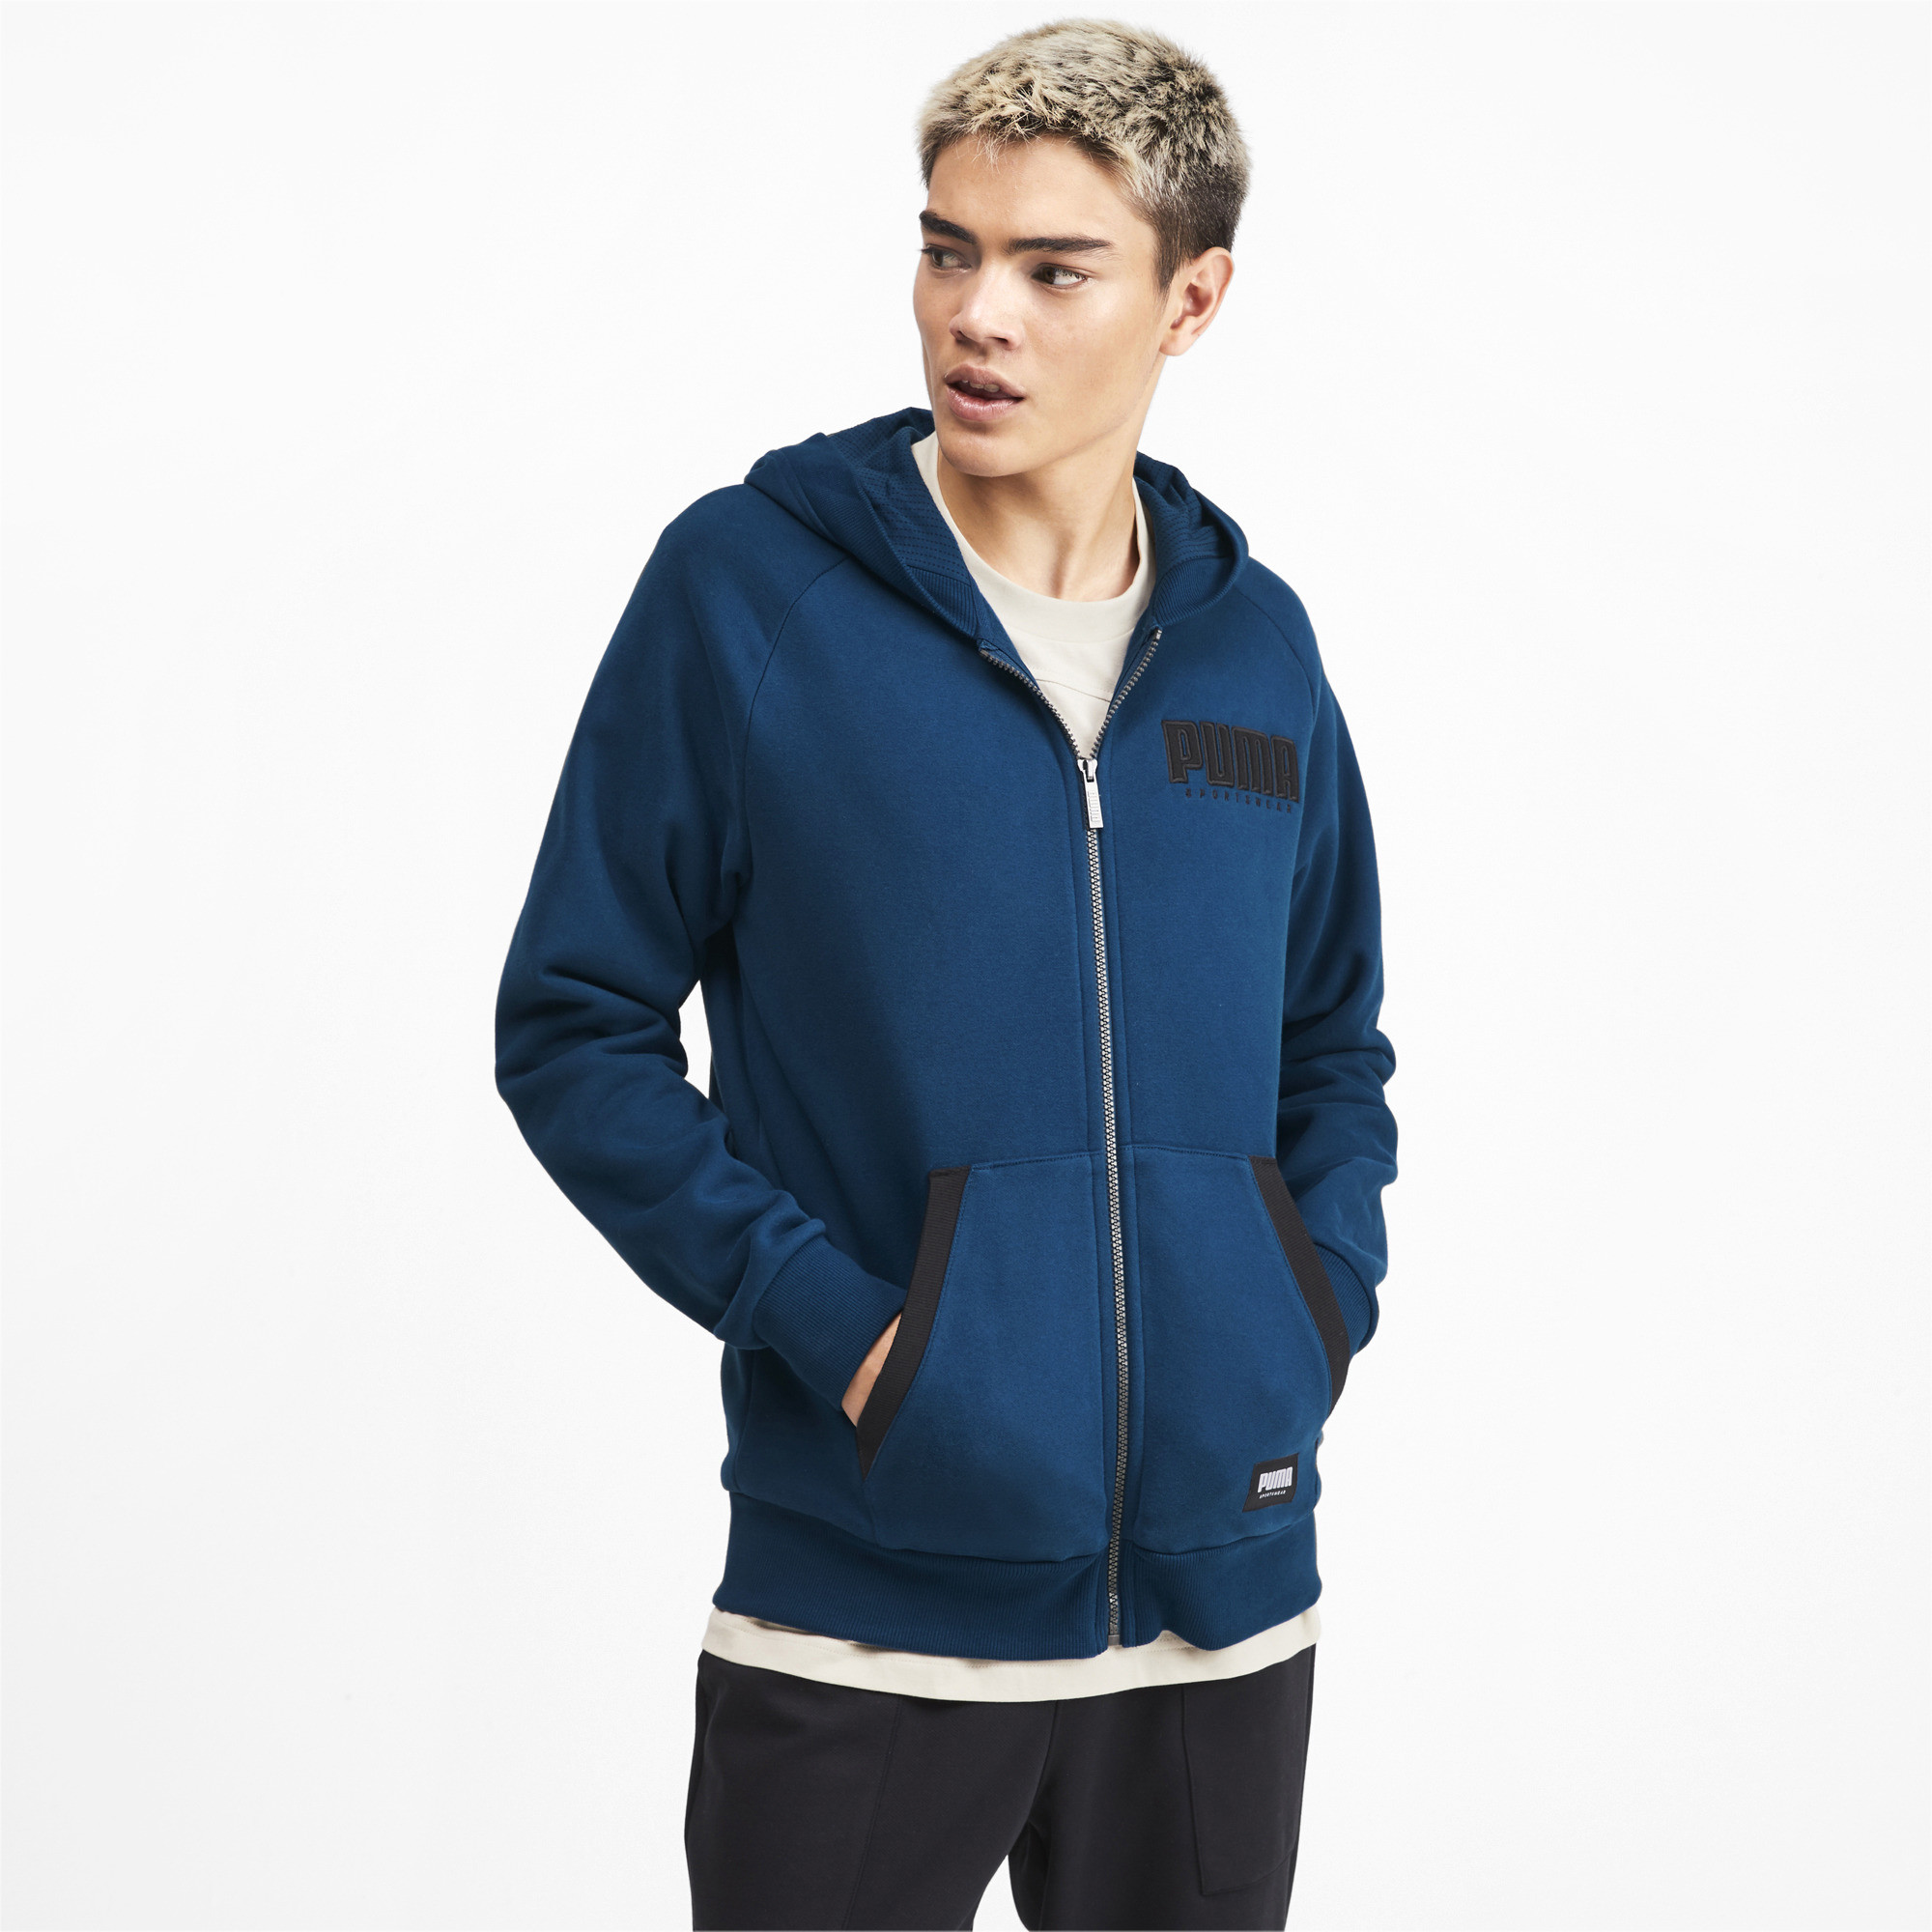 PUMA-Athletics-Men-039-s-Full-Zip-Fleece-Hoodie-Men-Sweat-Basics thumbnail 9